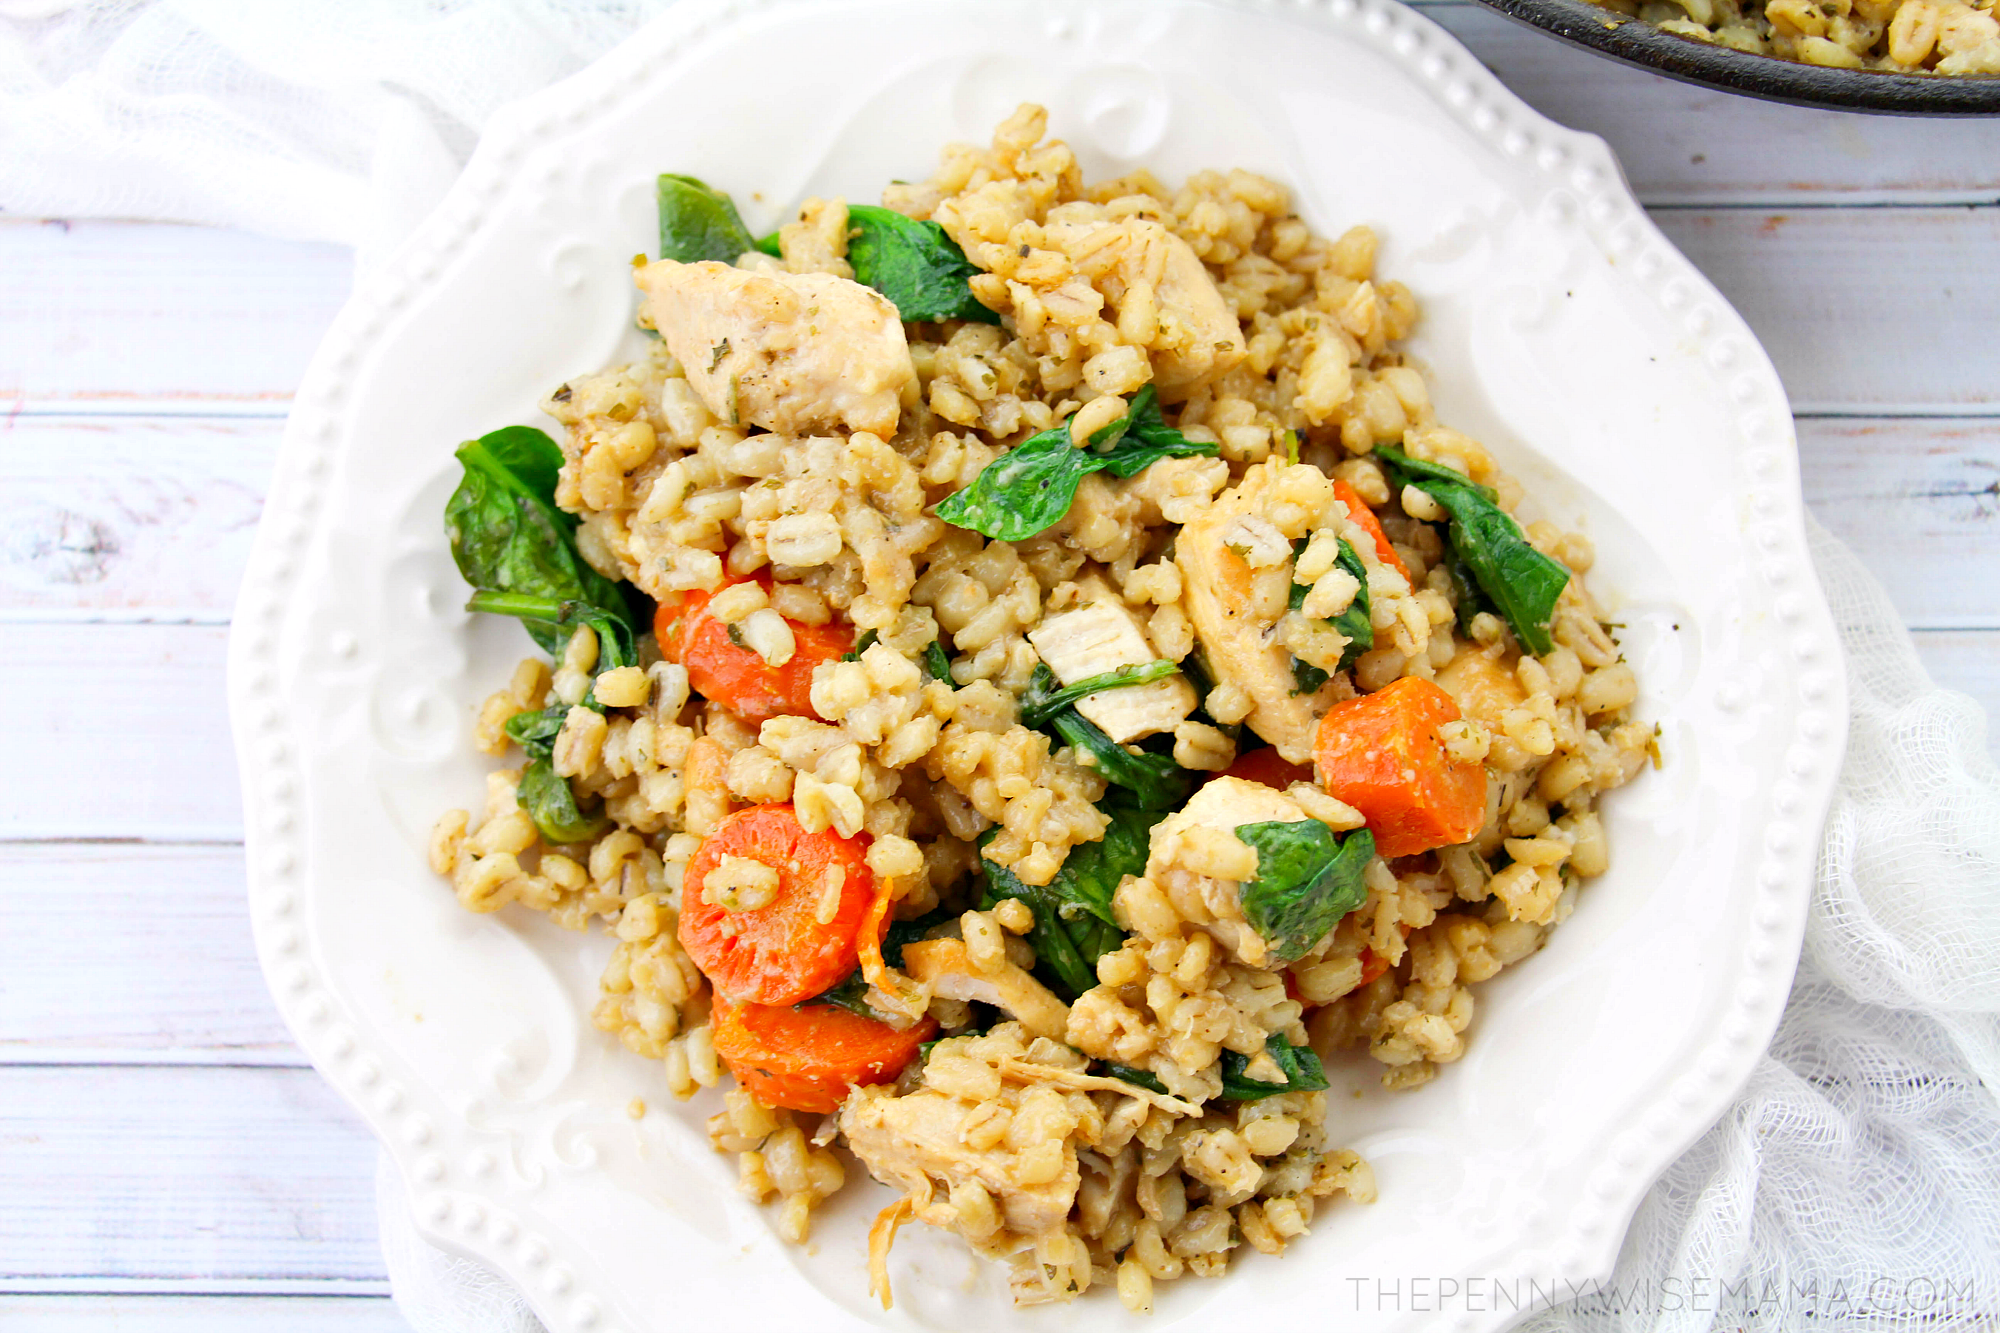 Lemon Chicken with Barley